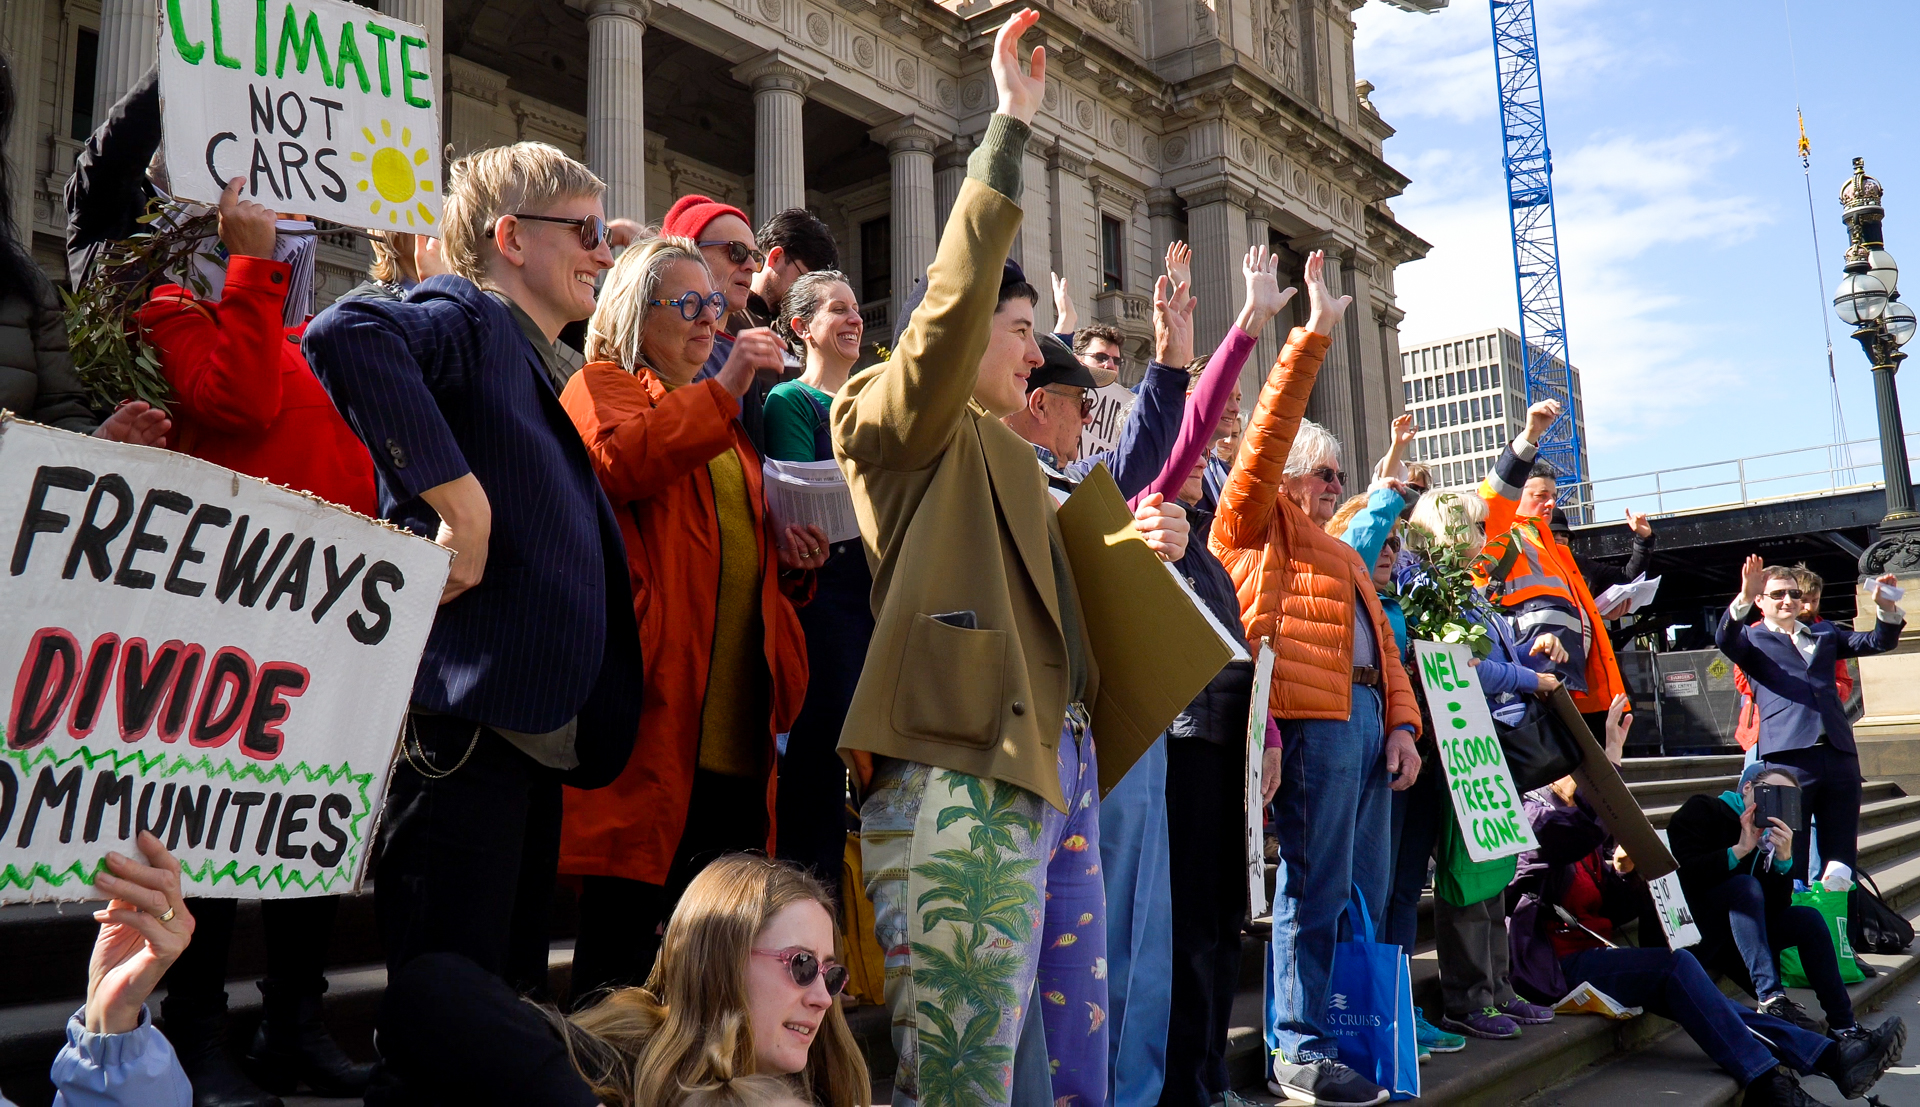 A group of people dressed in colourful clothes standing on Parliament steps with their hands in the air